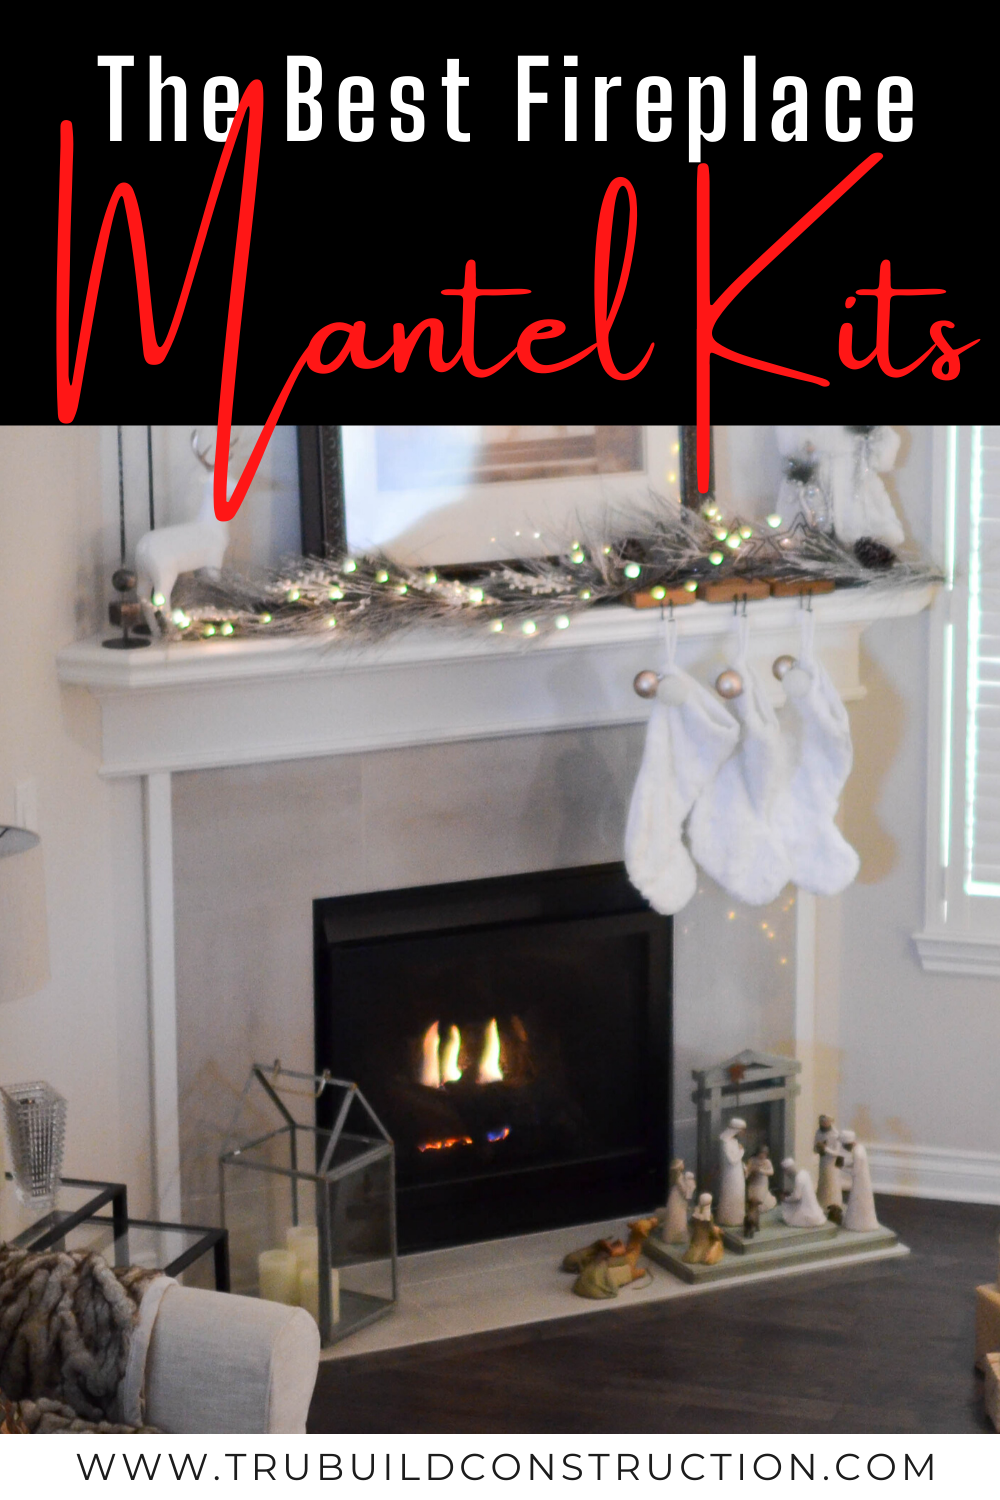 The Best Easy To Install Fireplace Mantel Kits For Your Home Trubuild Construction